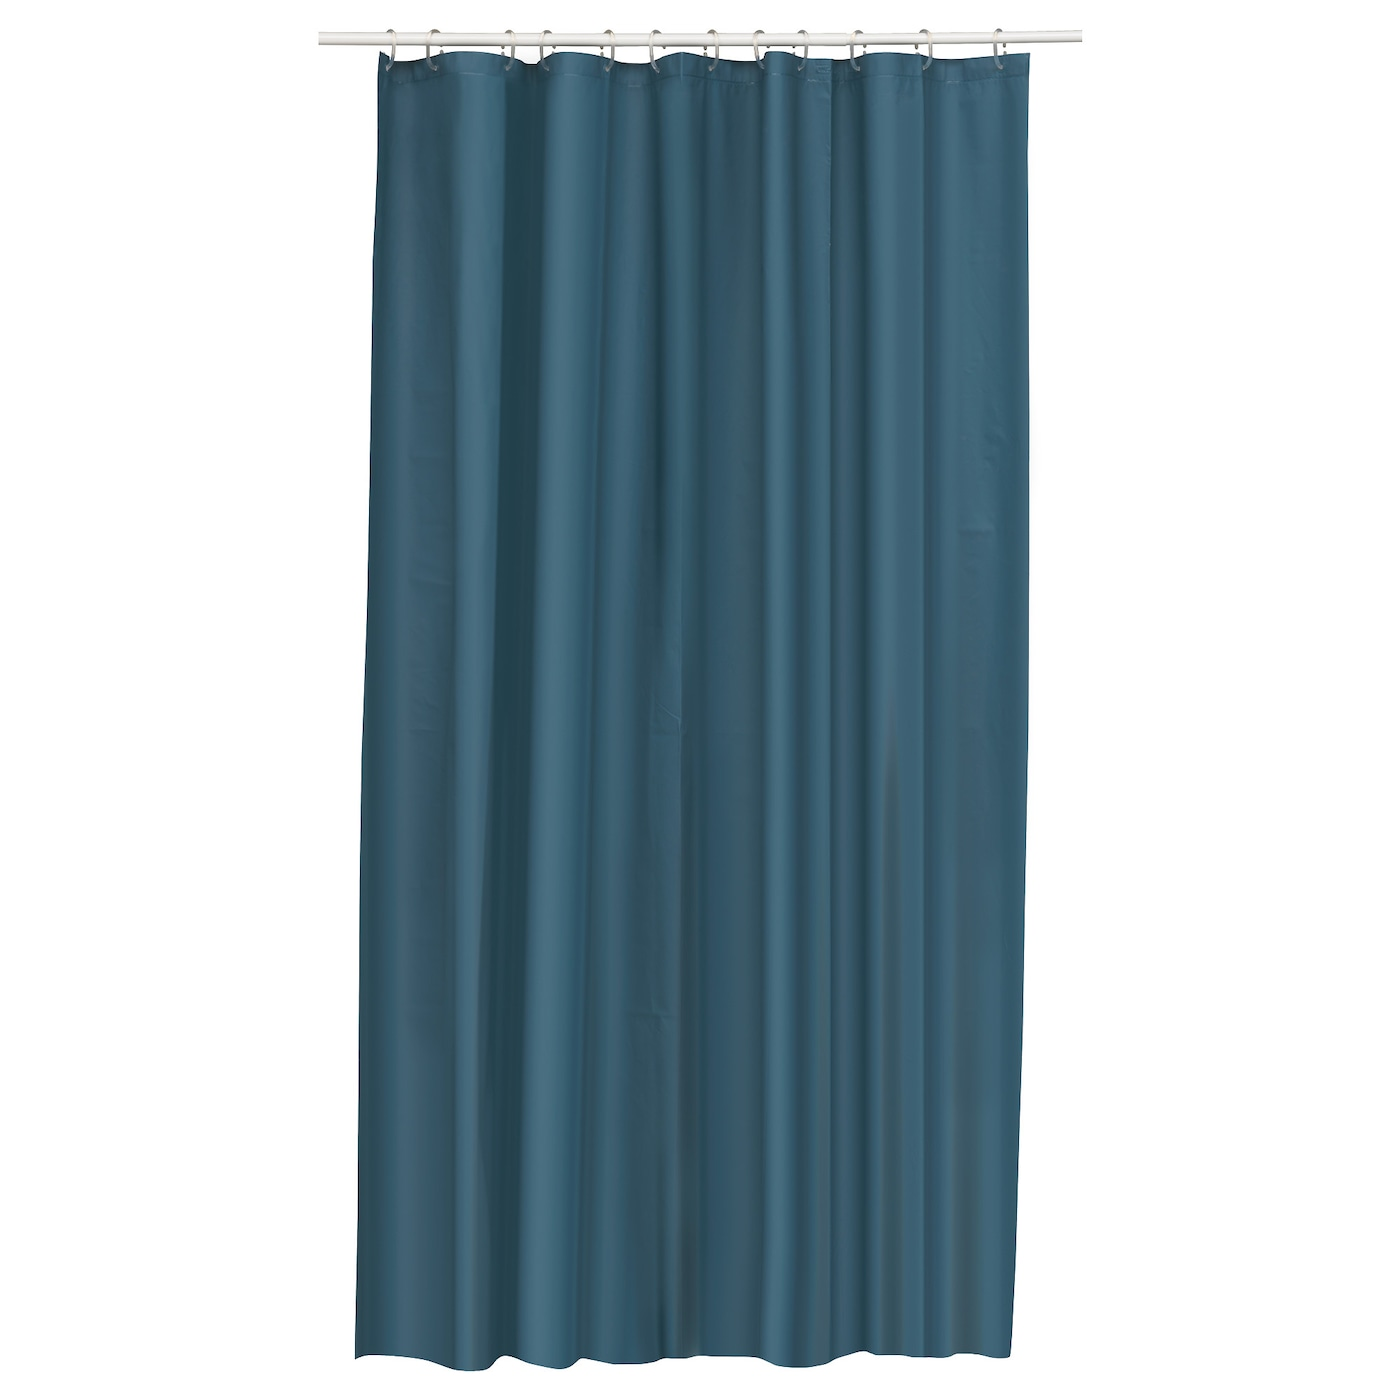 Eggegrund shower curtain green blue 180x180 cm ikea for Where can i buy curtains online